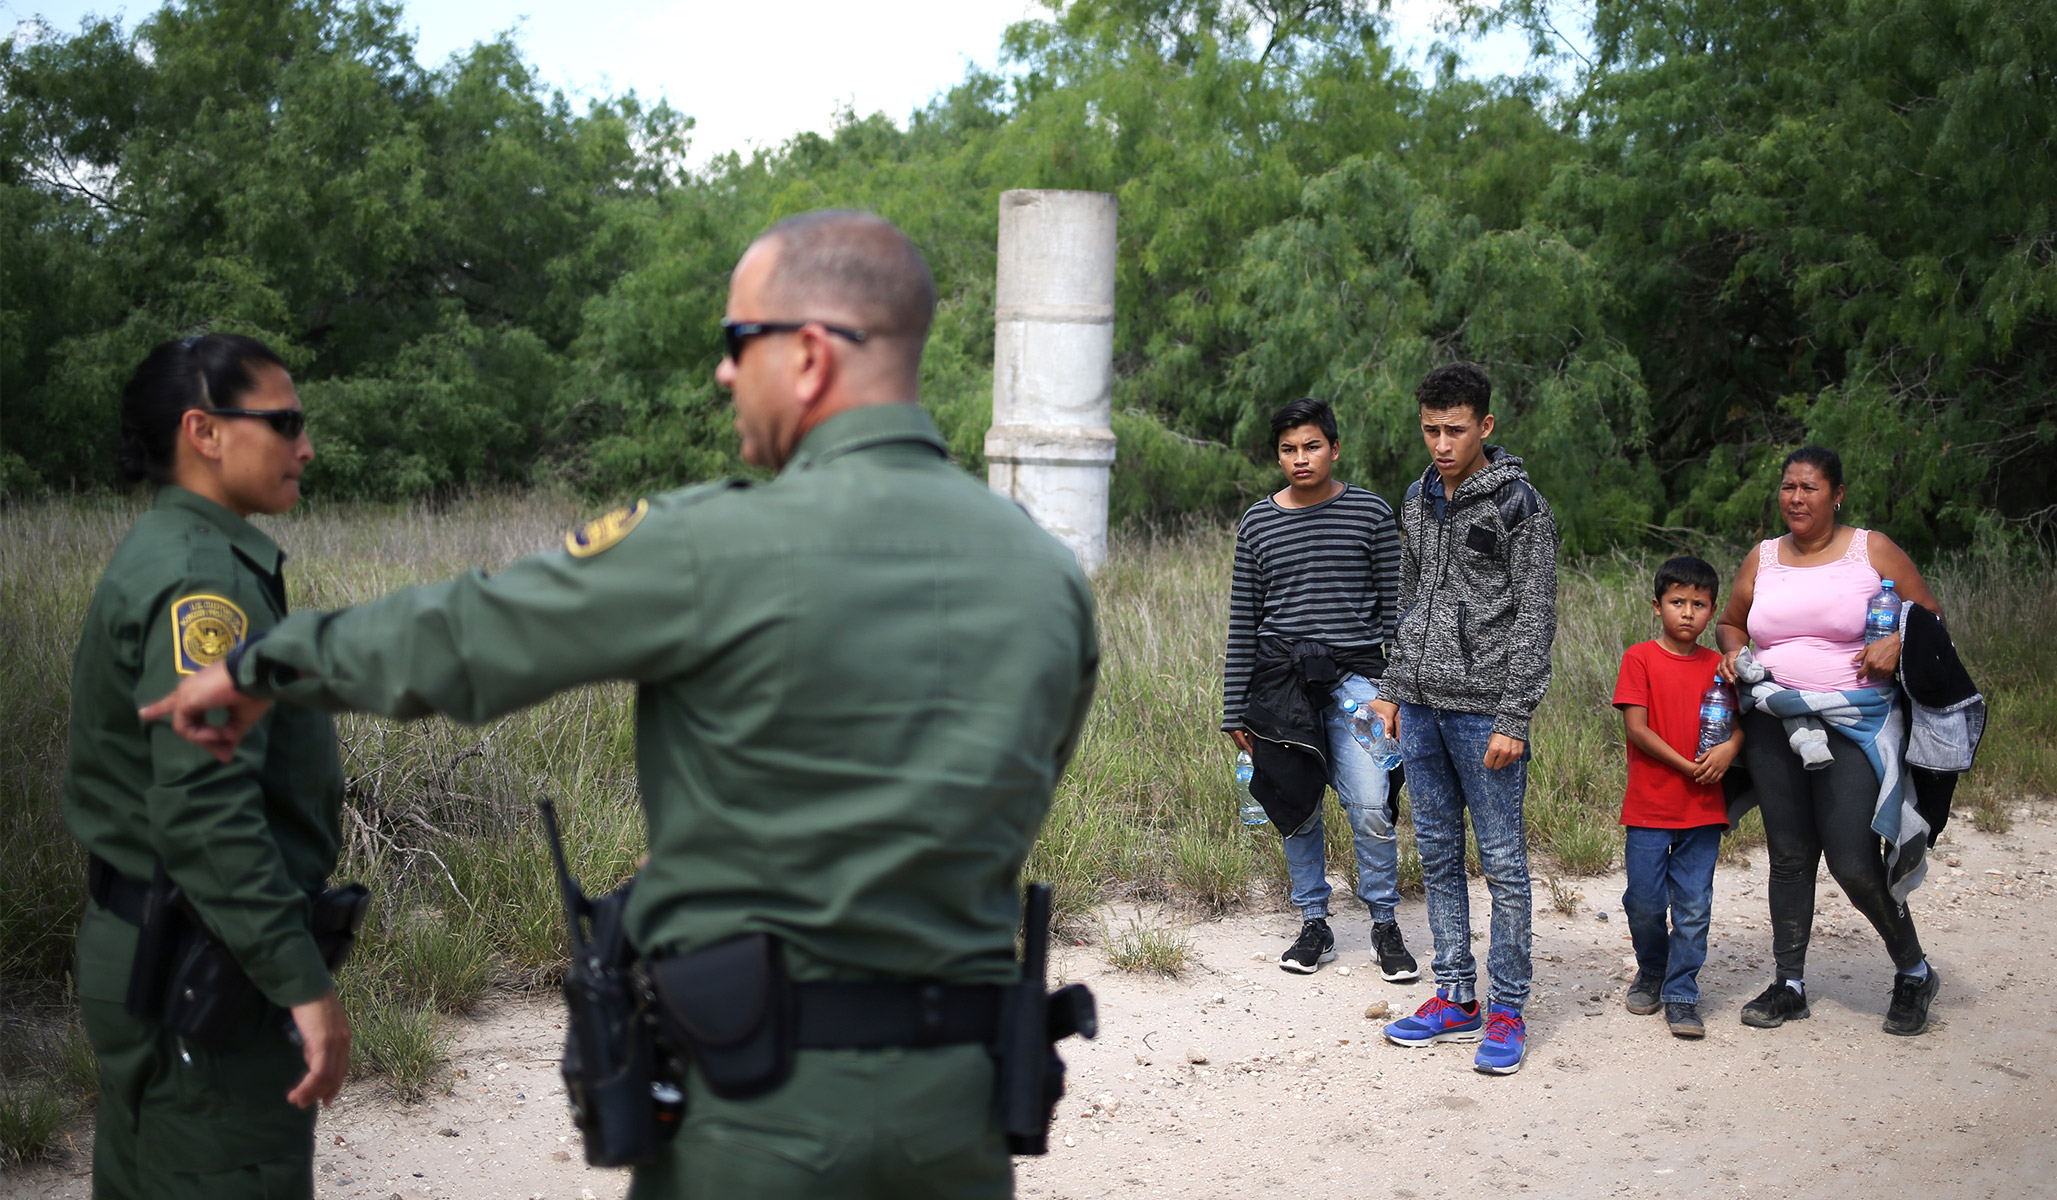 d1803ee5c67 Separating Kids at Border: The Truth   National Review